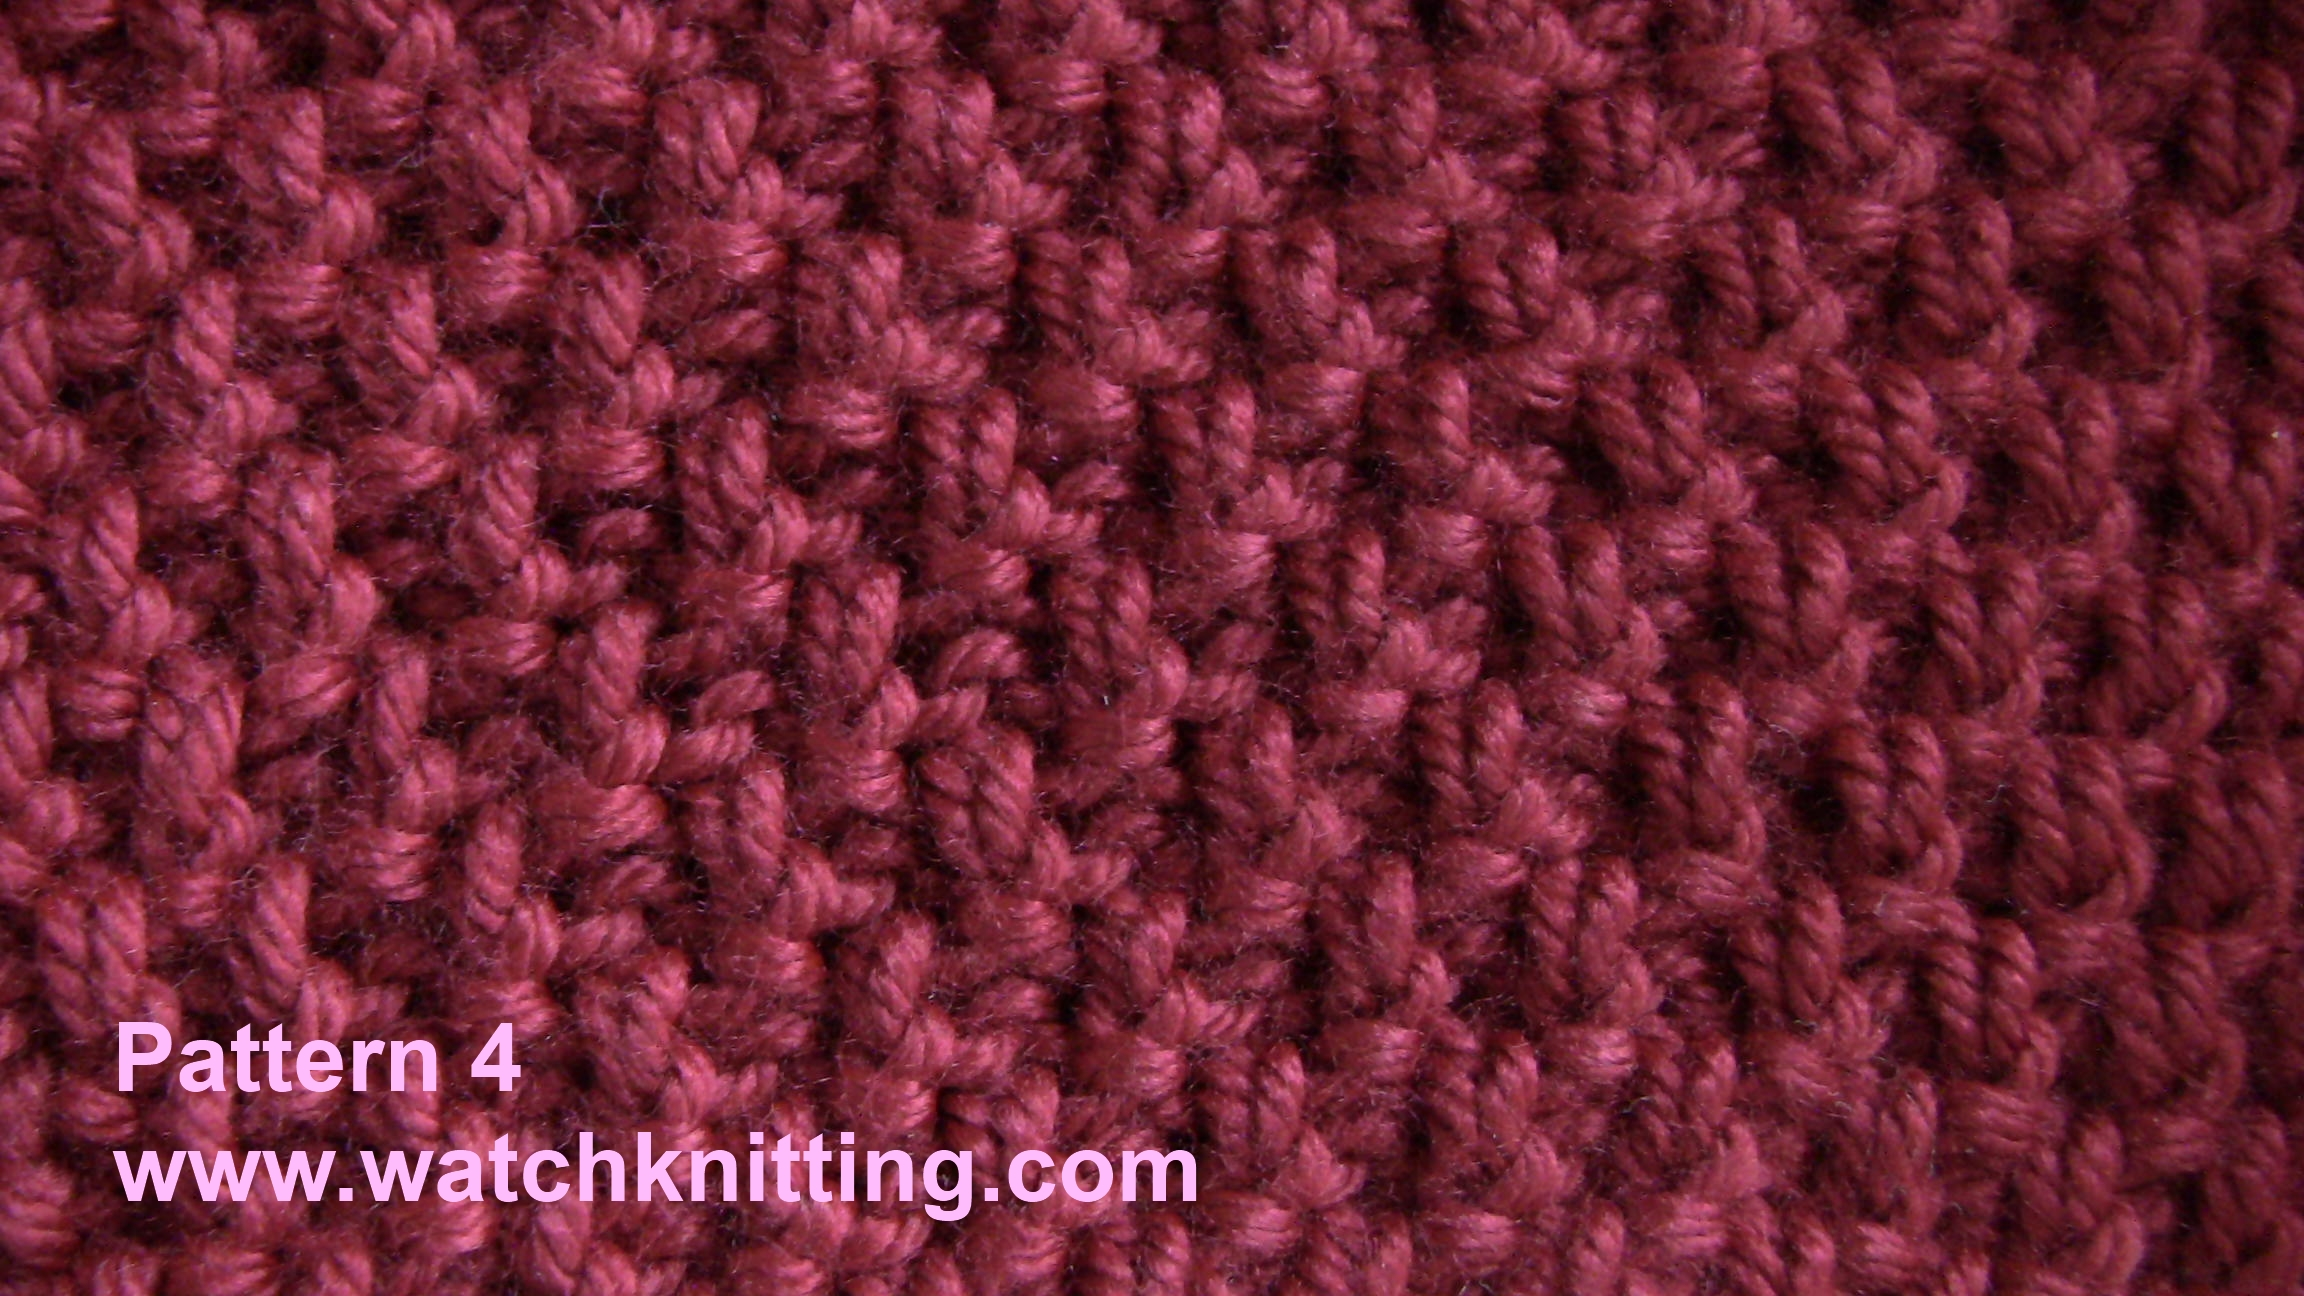 Knitting Pattern Design : Pattern 4 (Double Moss Model ) - Simple Knitting Models